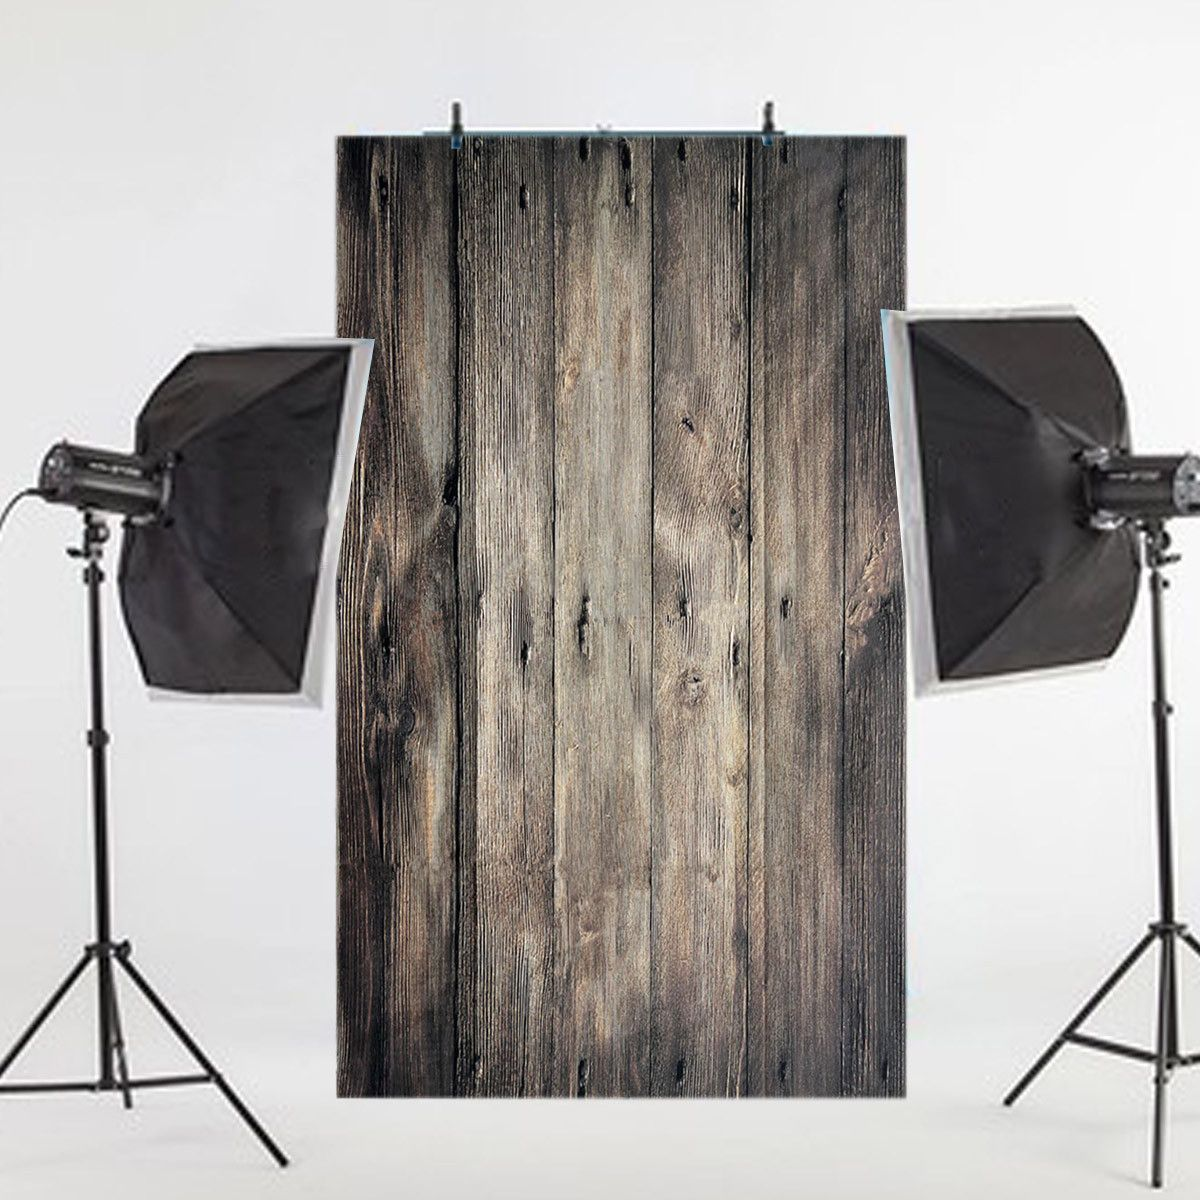 New 3x5FT Vintage Photography Backdrops Wood Vintage Photography Backdrop Backgrounds Studio Wood Background Fotografia 3x5ft colorful photography backdrops photo wooden wall floor background studio props